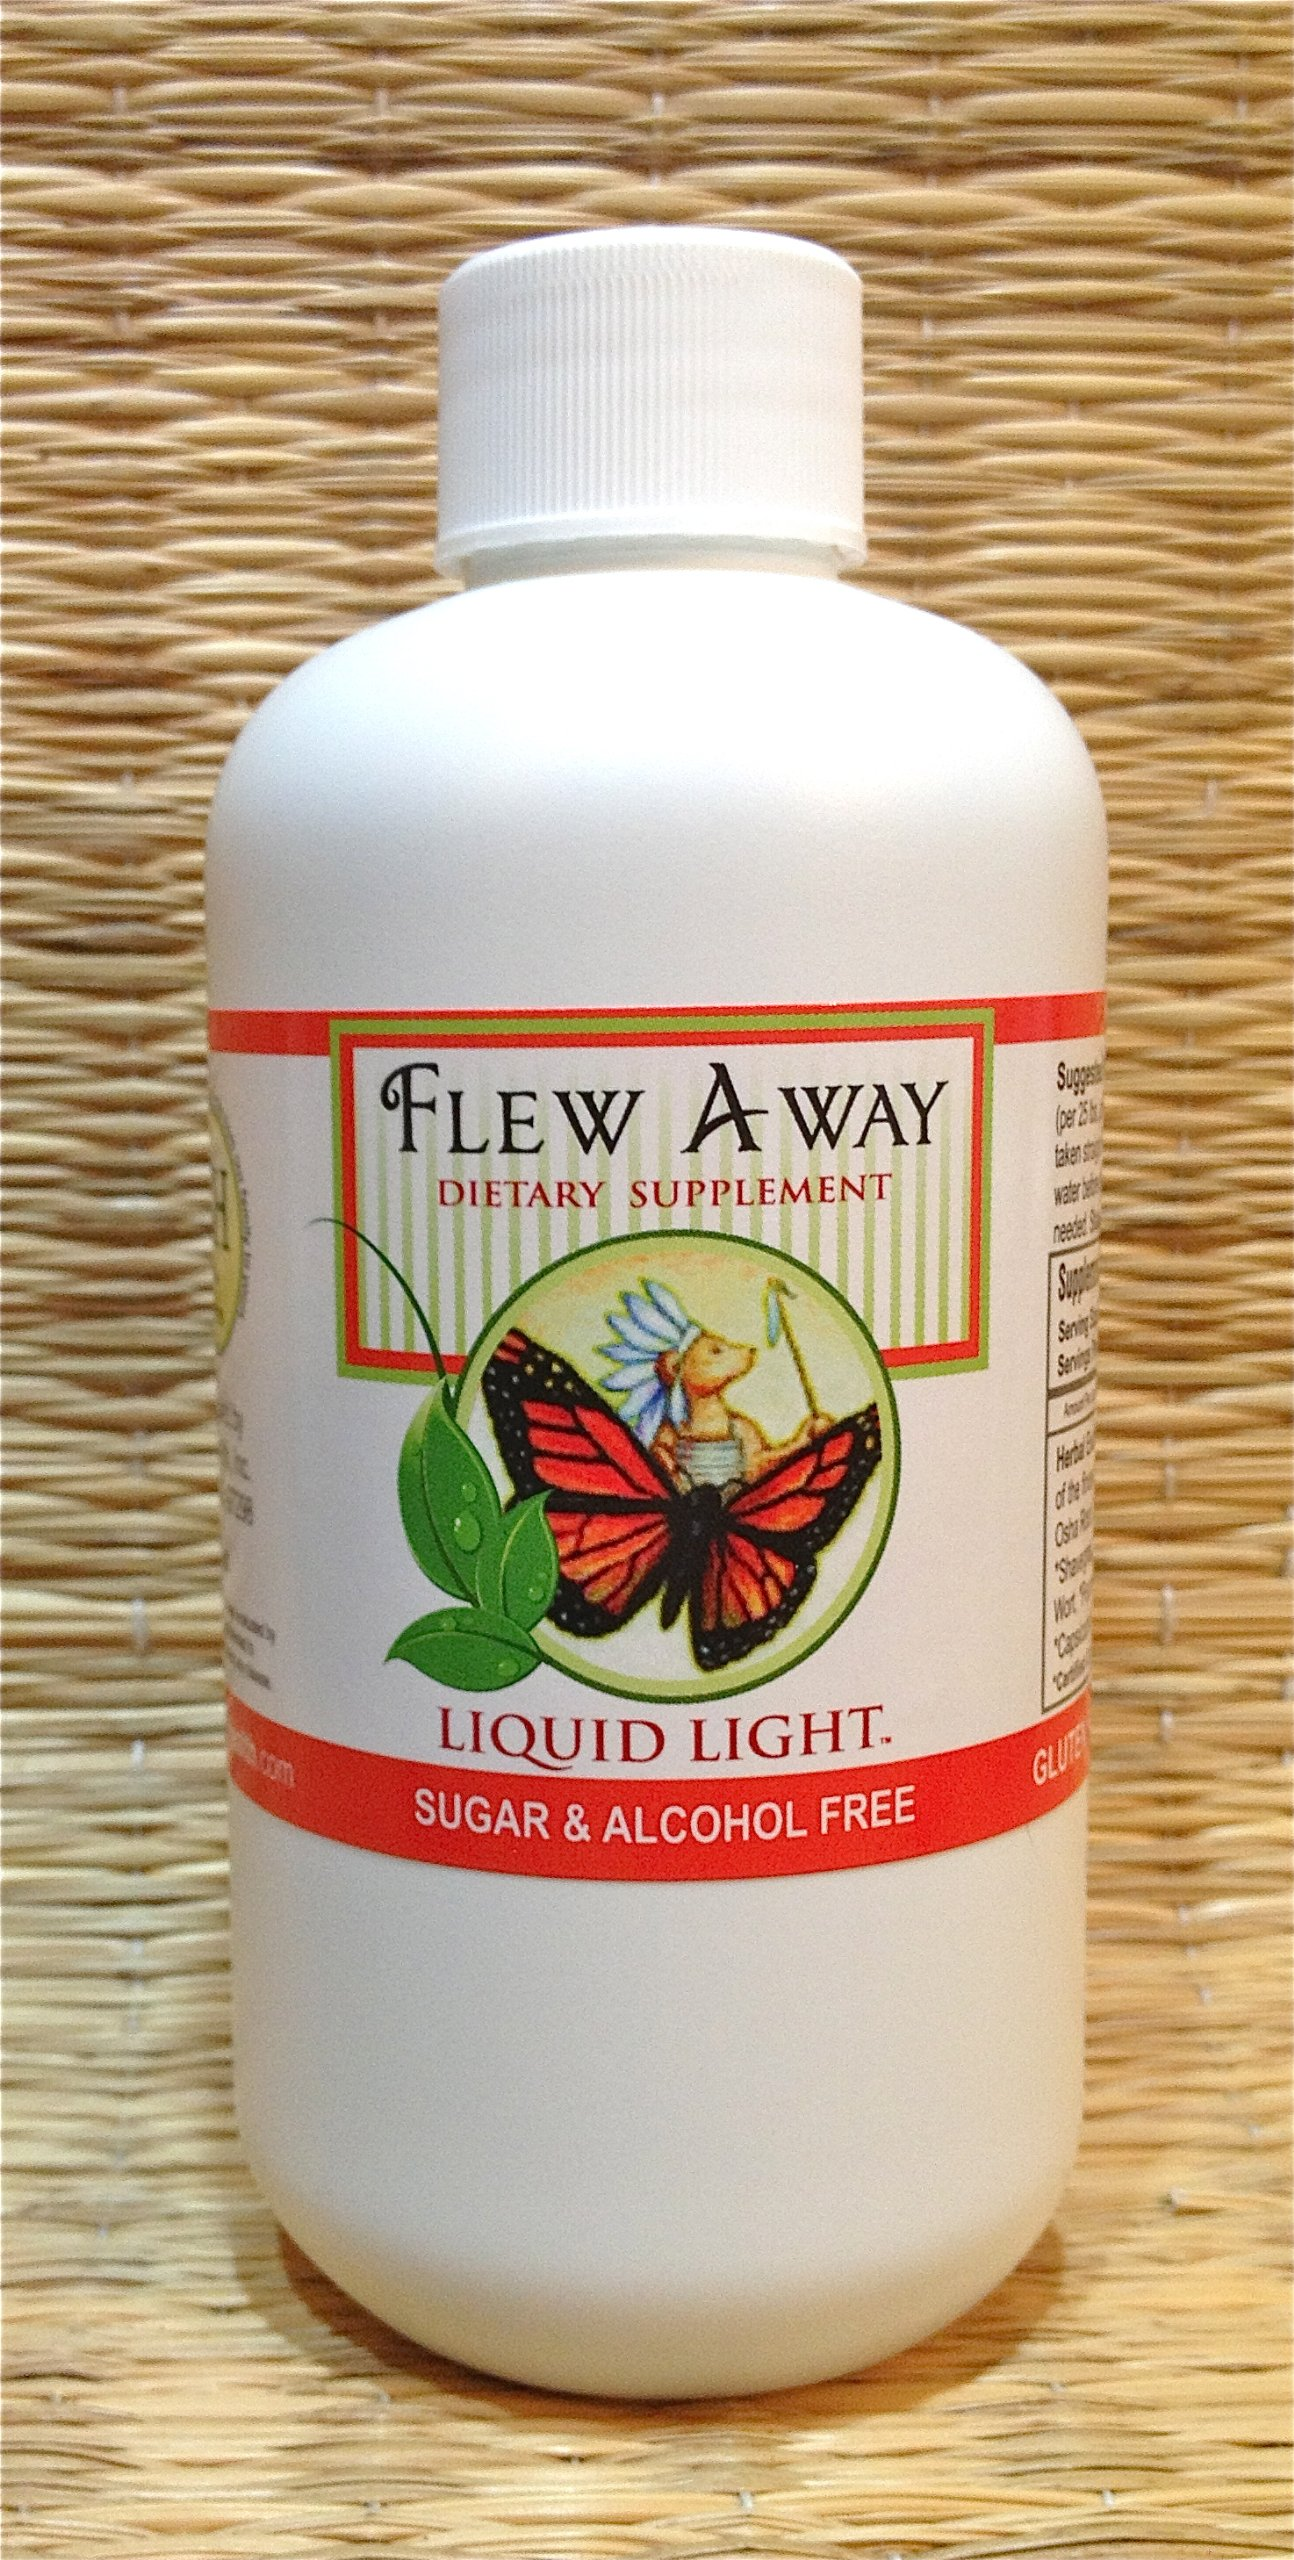 Flew Away (8 oz Bottle) - Cold Season Help with Ear Infections, Coughing, Respiratory, Child Safe Too. Herbal Extract. Alcohol Free. Used Safely and Effectively for Over 20 Years.